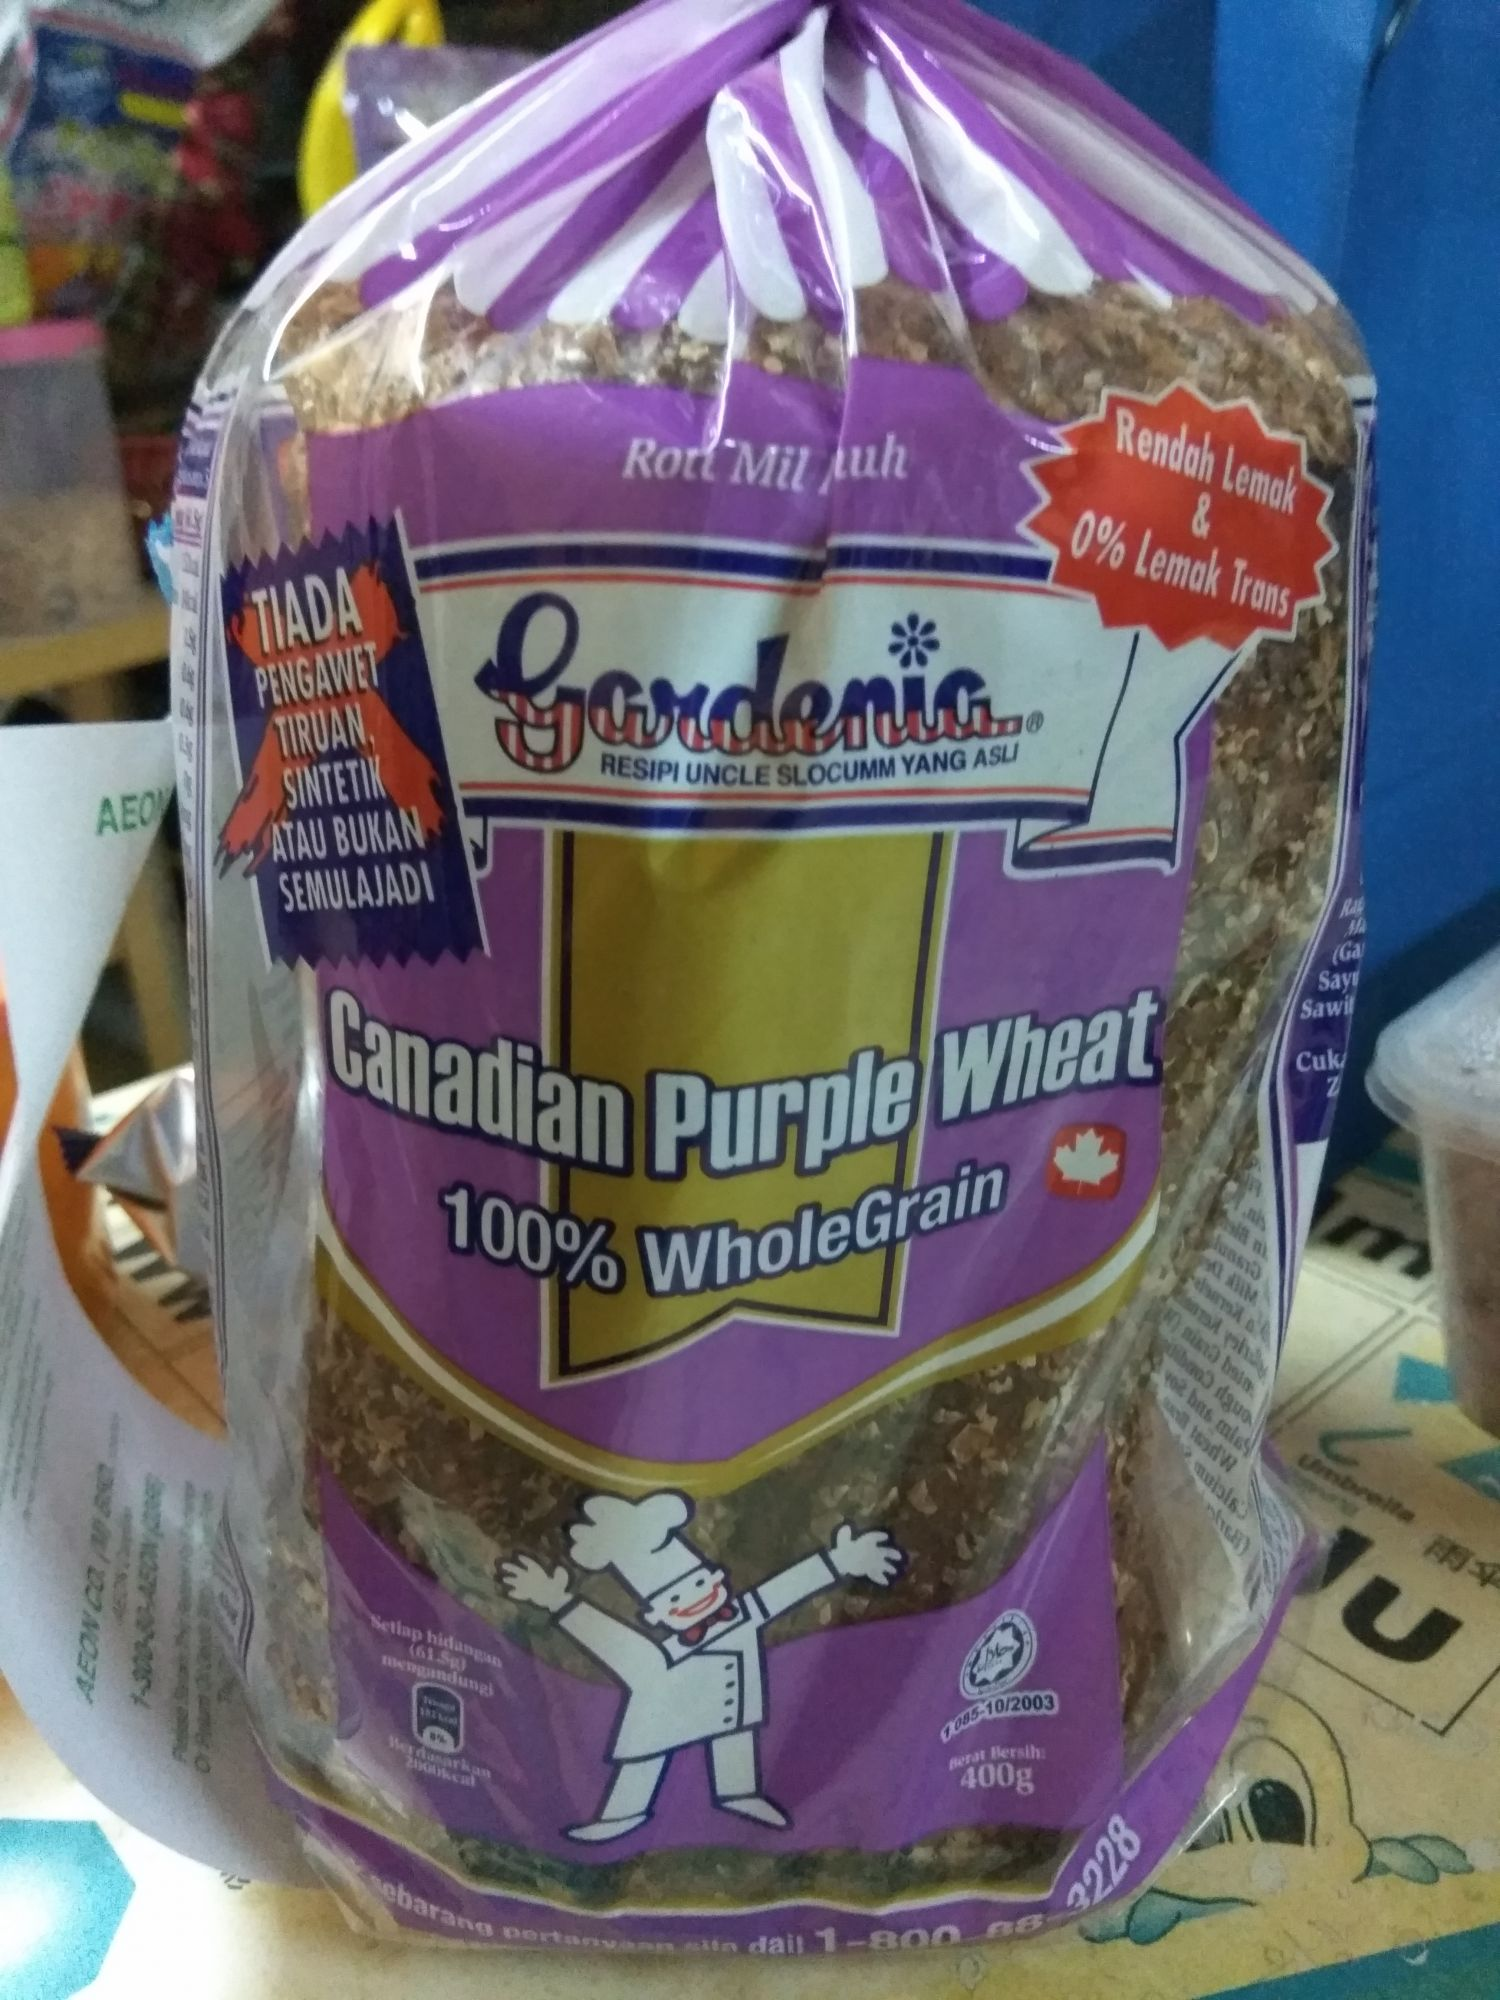 Gardenia 100 Wholegrain With Canadian Purple Wheat Reviews